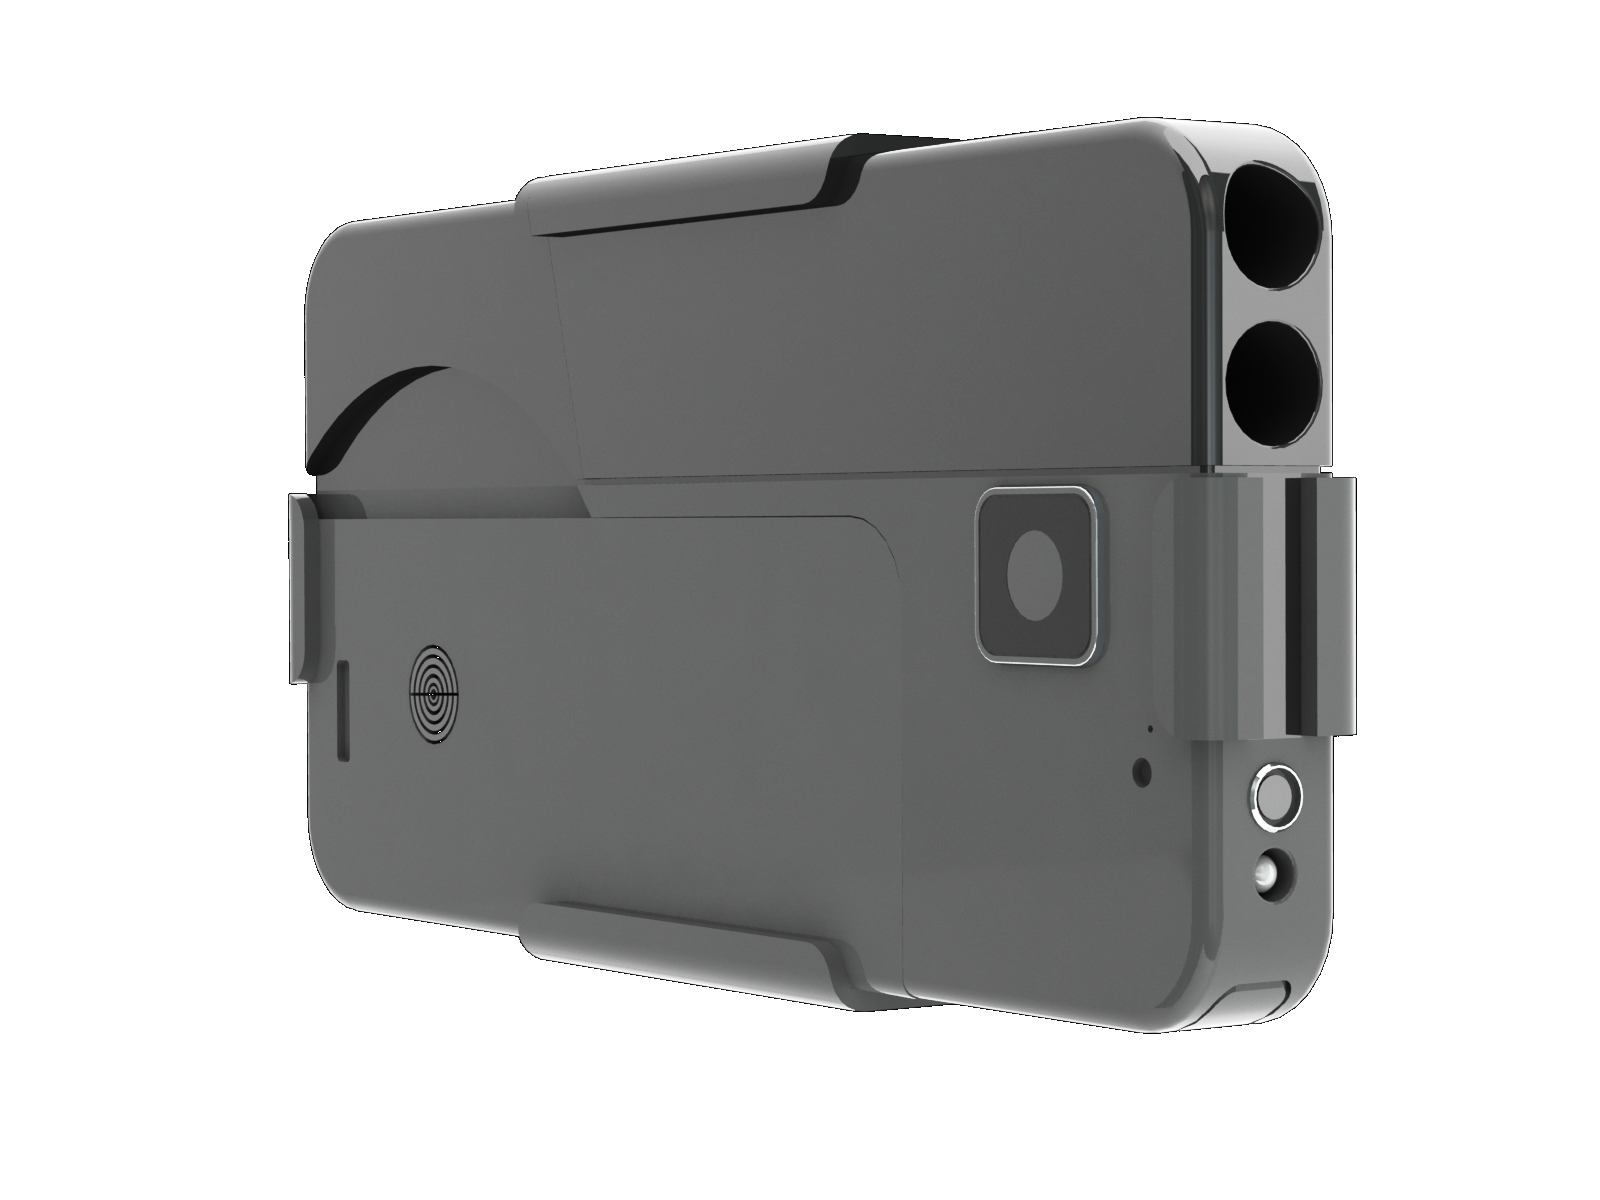 Ideal Conceal iPhone-like Gun